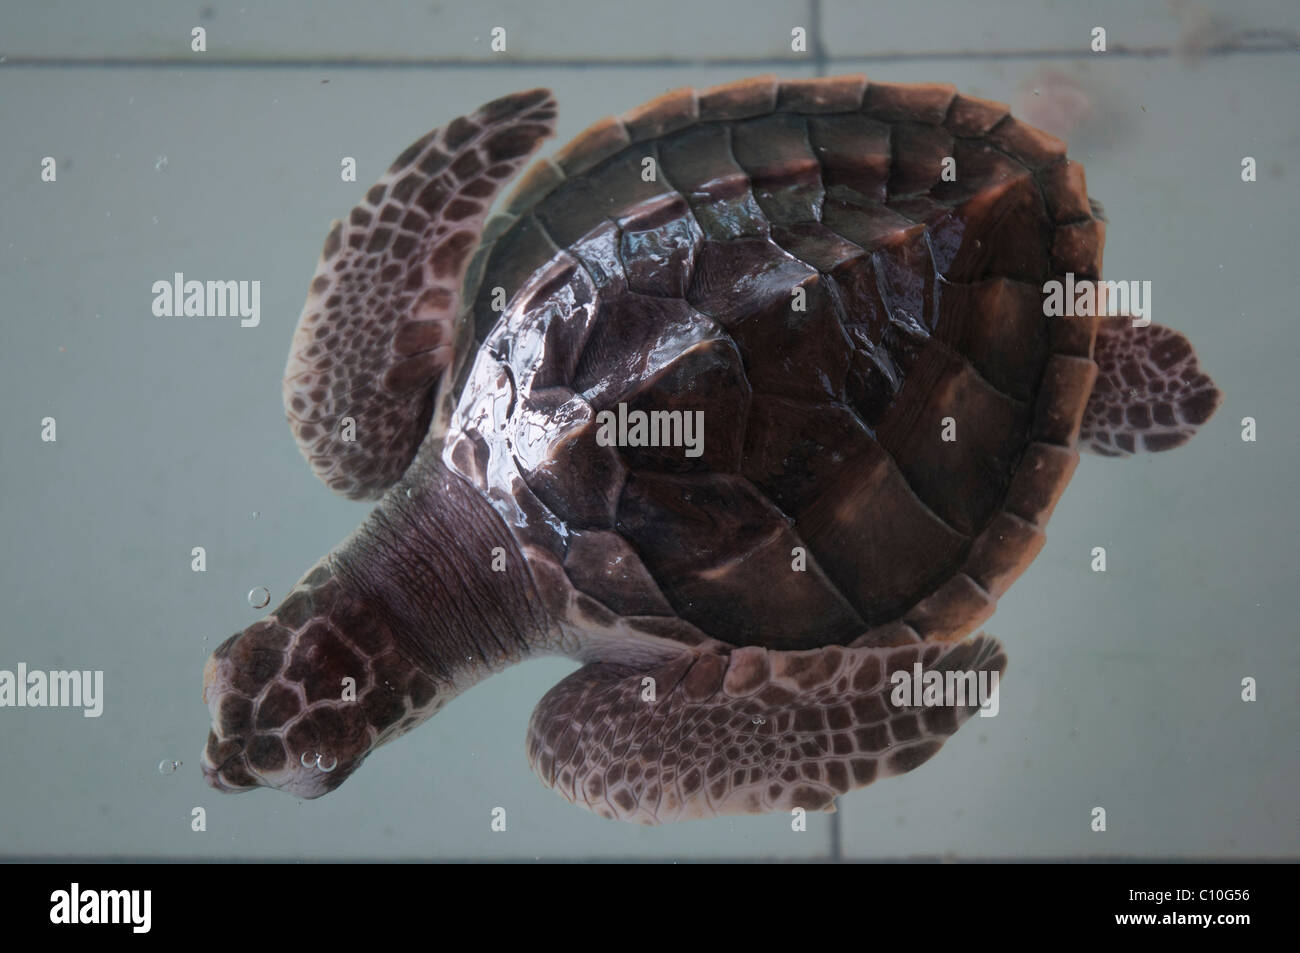 Baby loggerhead turtles in a turtle sanctuary on Gili Trawangan in Indonesia - Stock Image